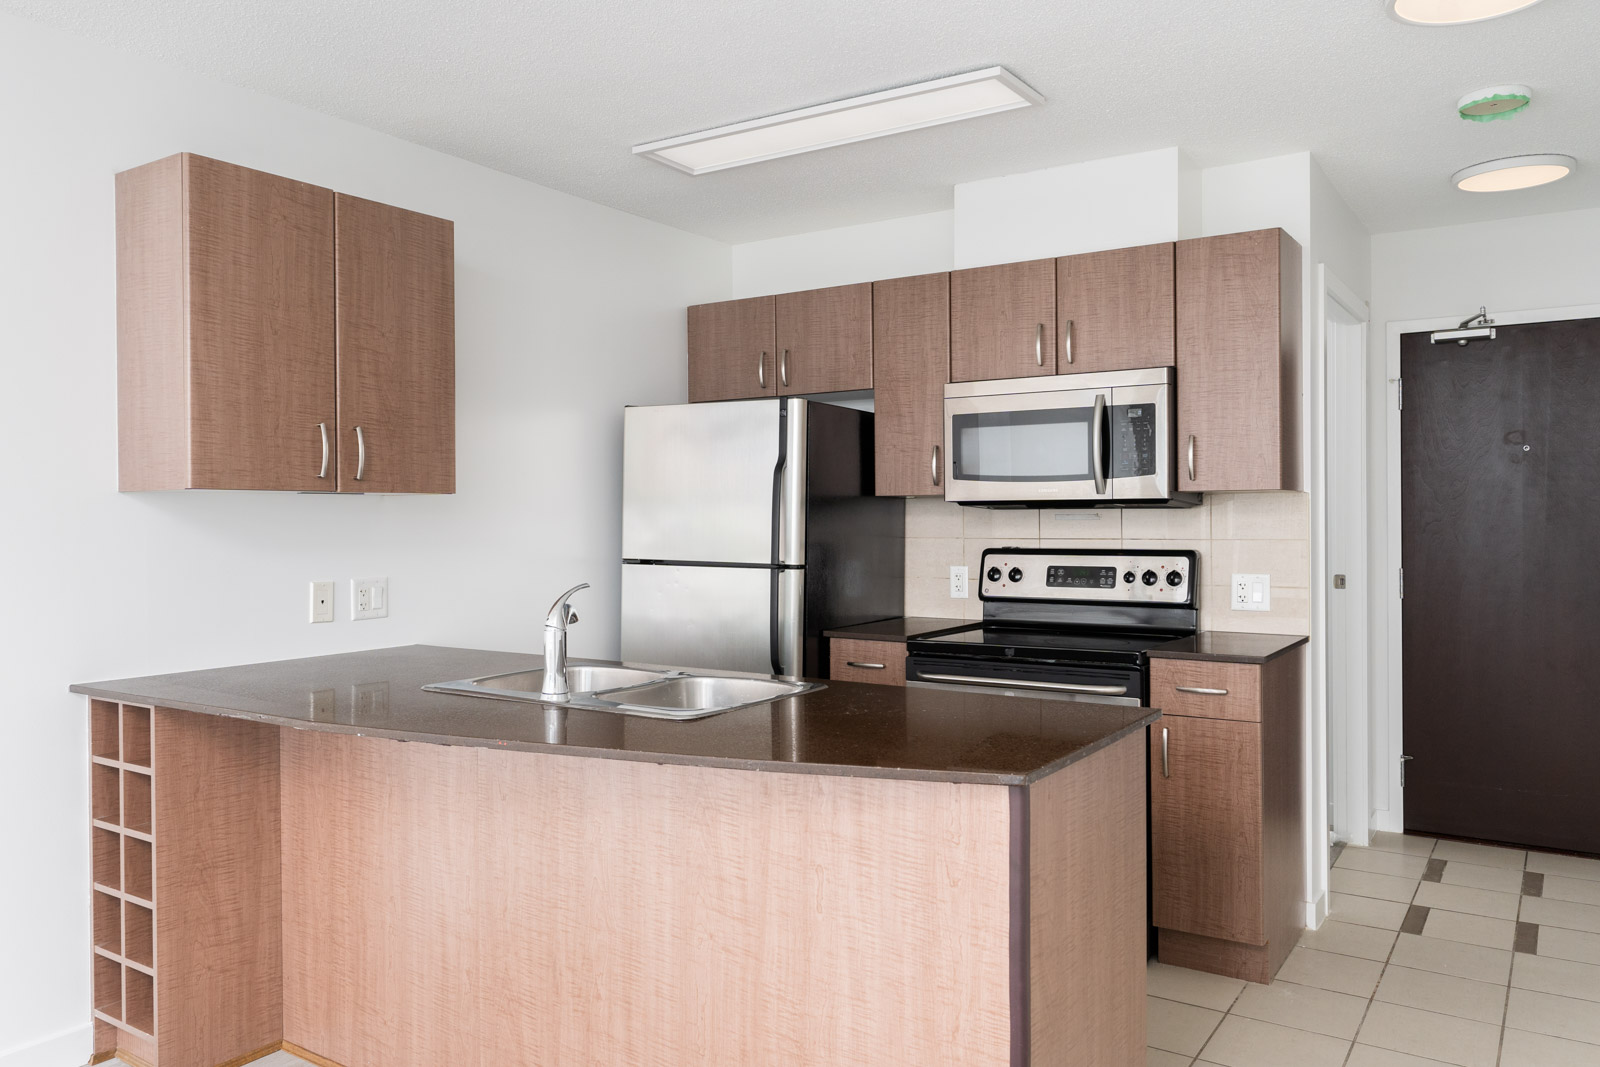 Kitchen fully equipped with high end appliances in condo managed by Birds Nest Properties